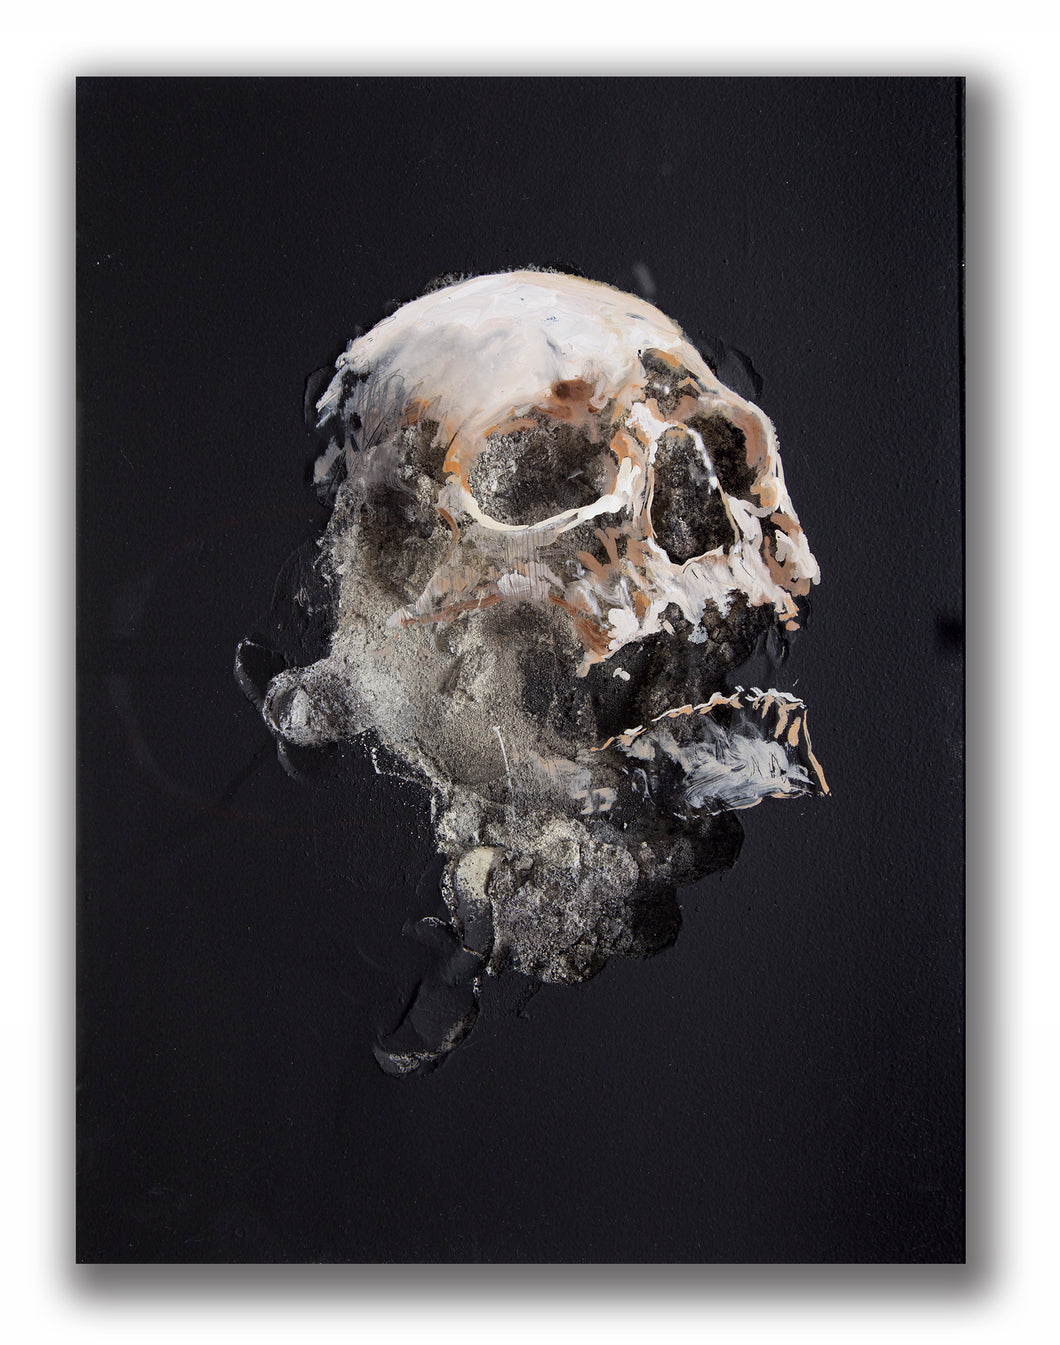 Wound in Black III | Juan Miguel Palacios | Painting